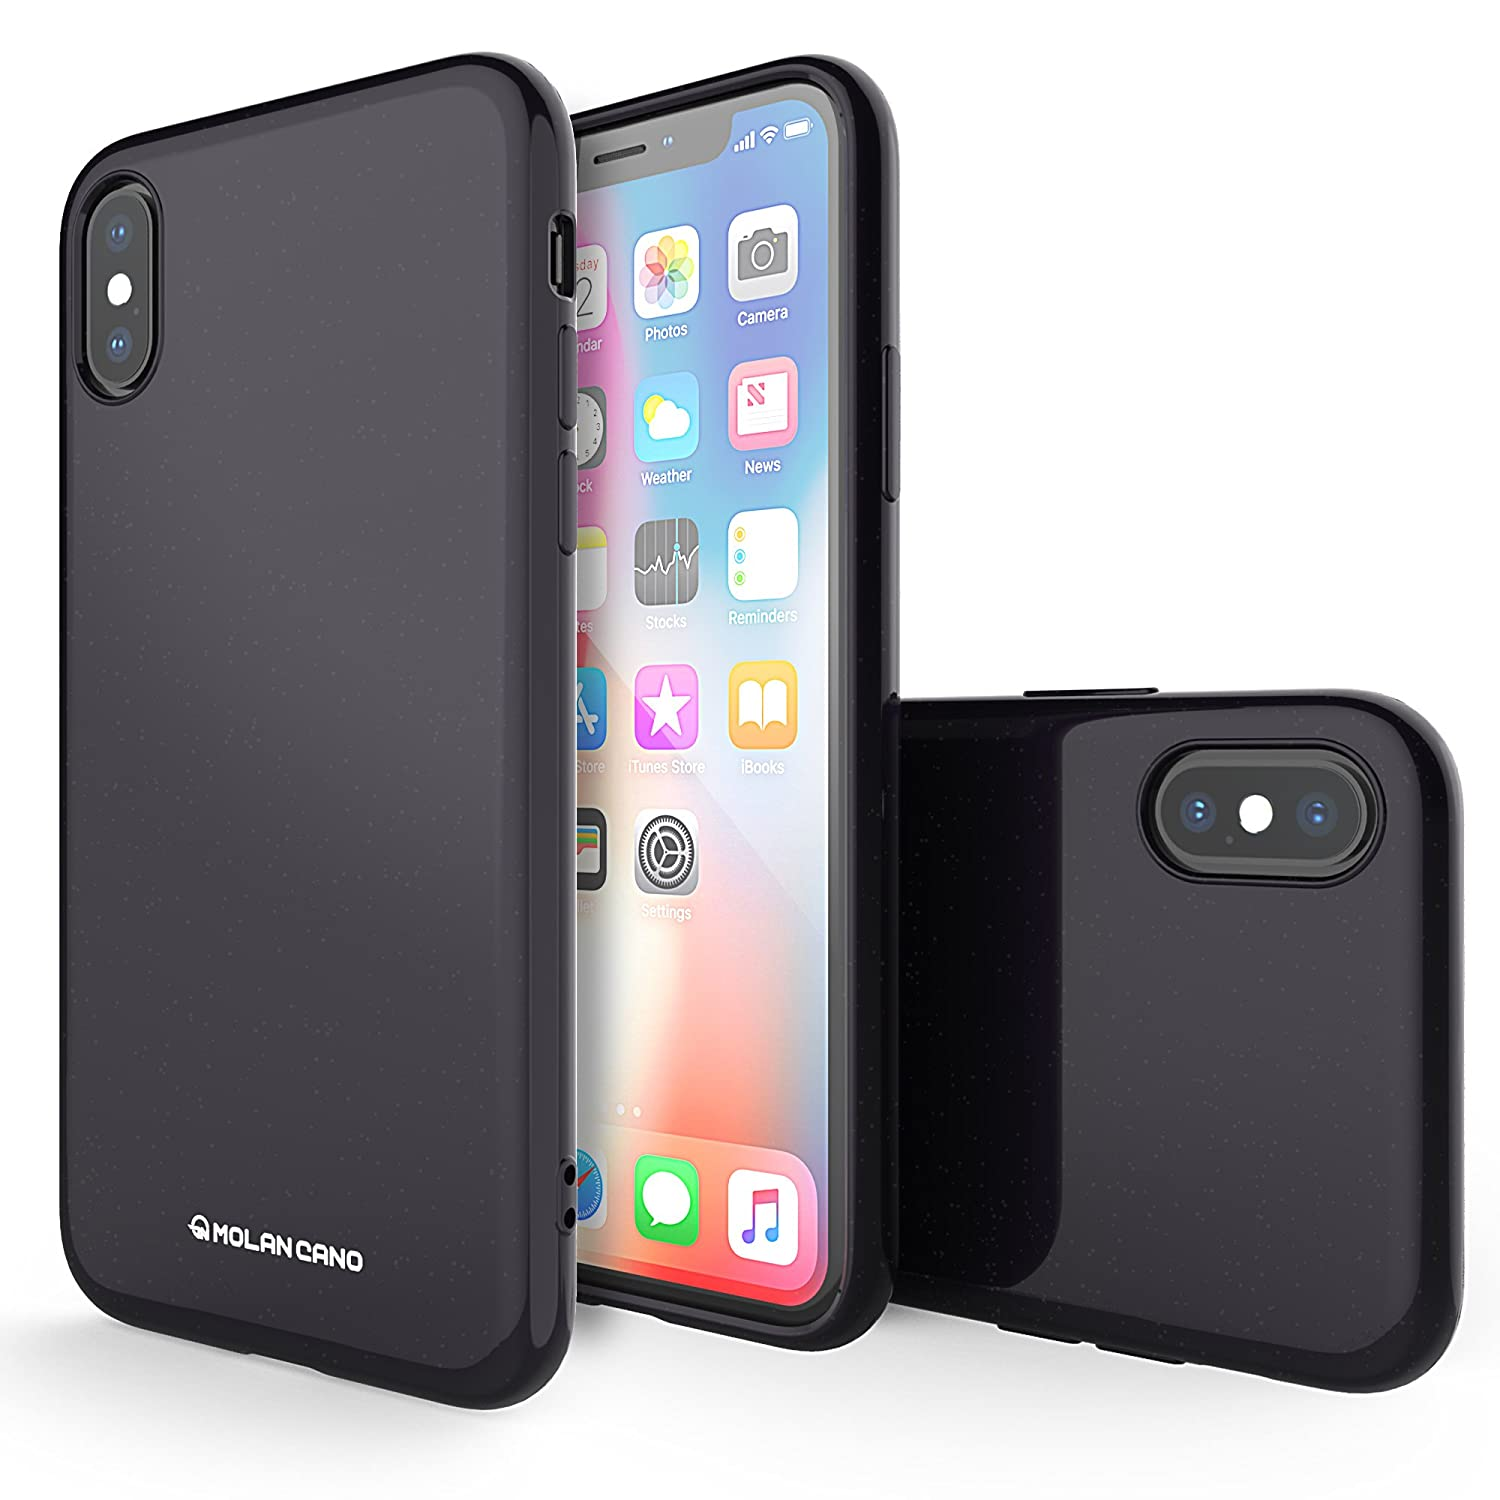 iPhone X Case, Molan Cano Thin Protective Shock Absorption Bumper Soft TPU Cover Case for Apple iPhone X - Glitter Black